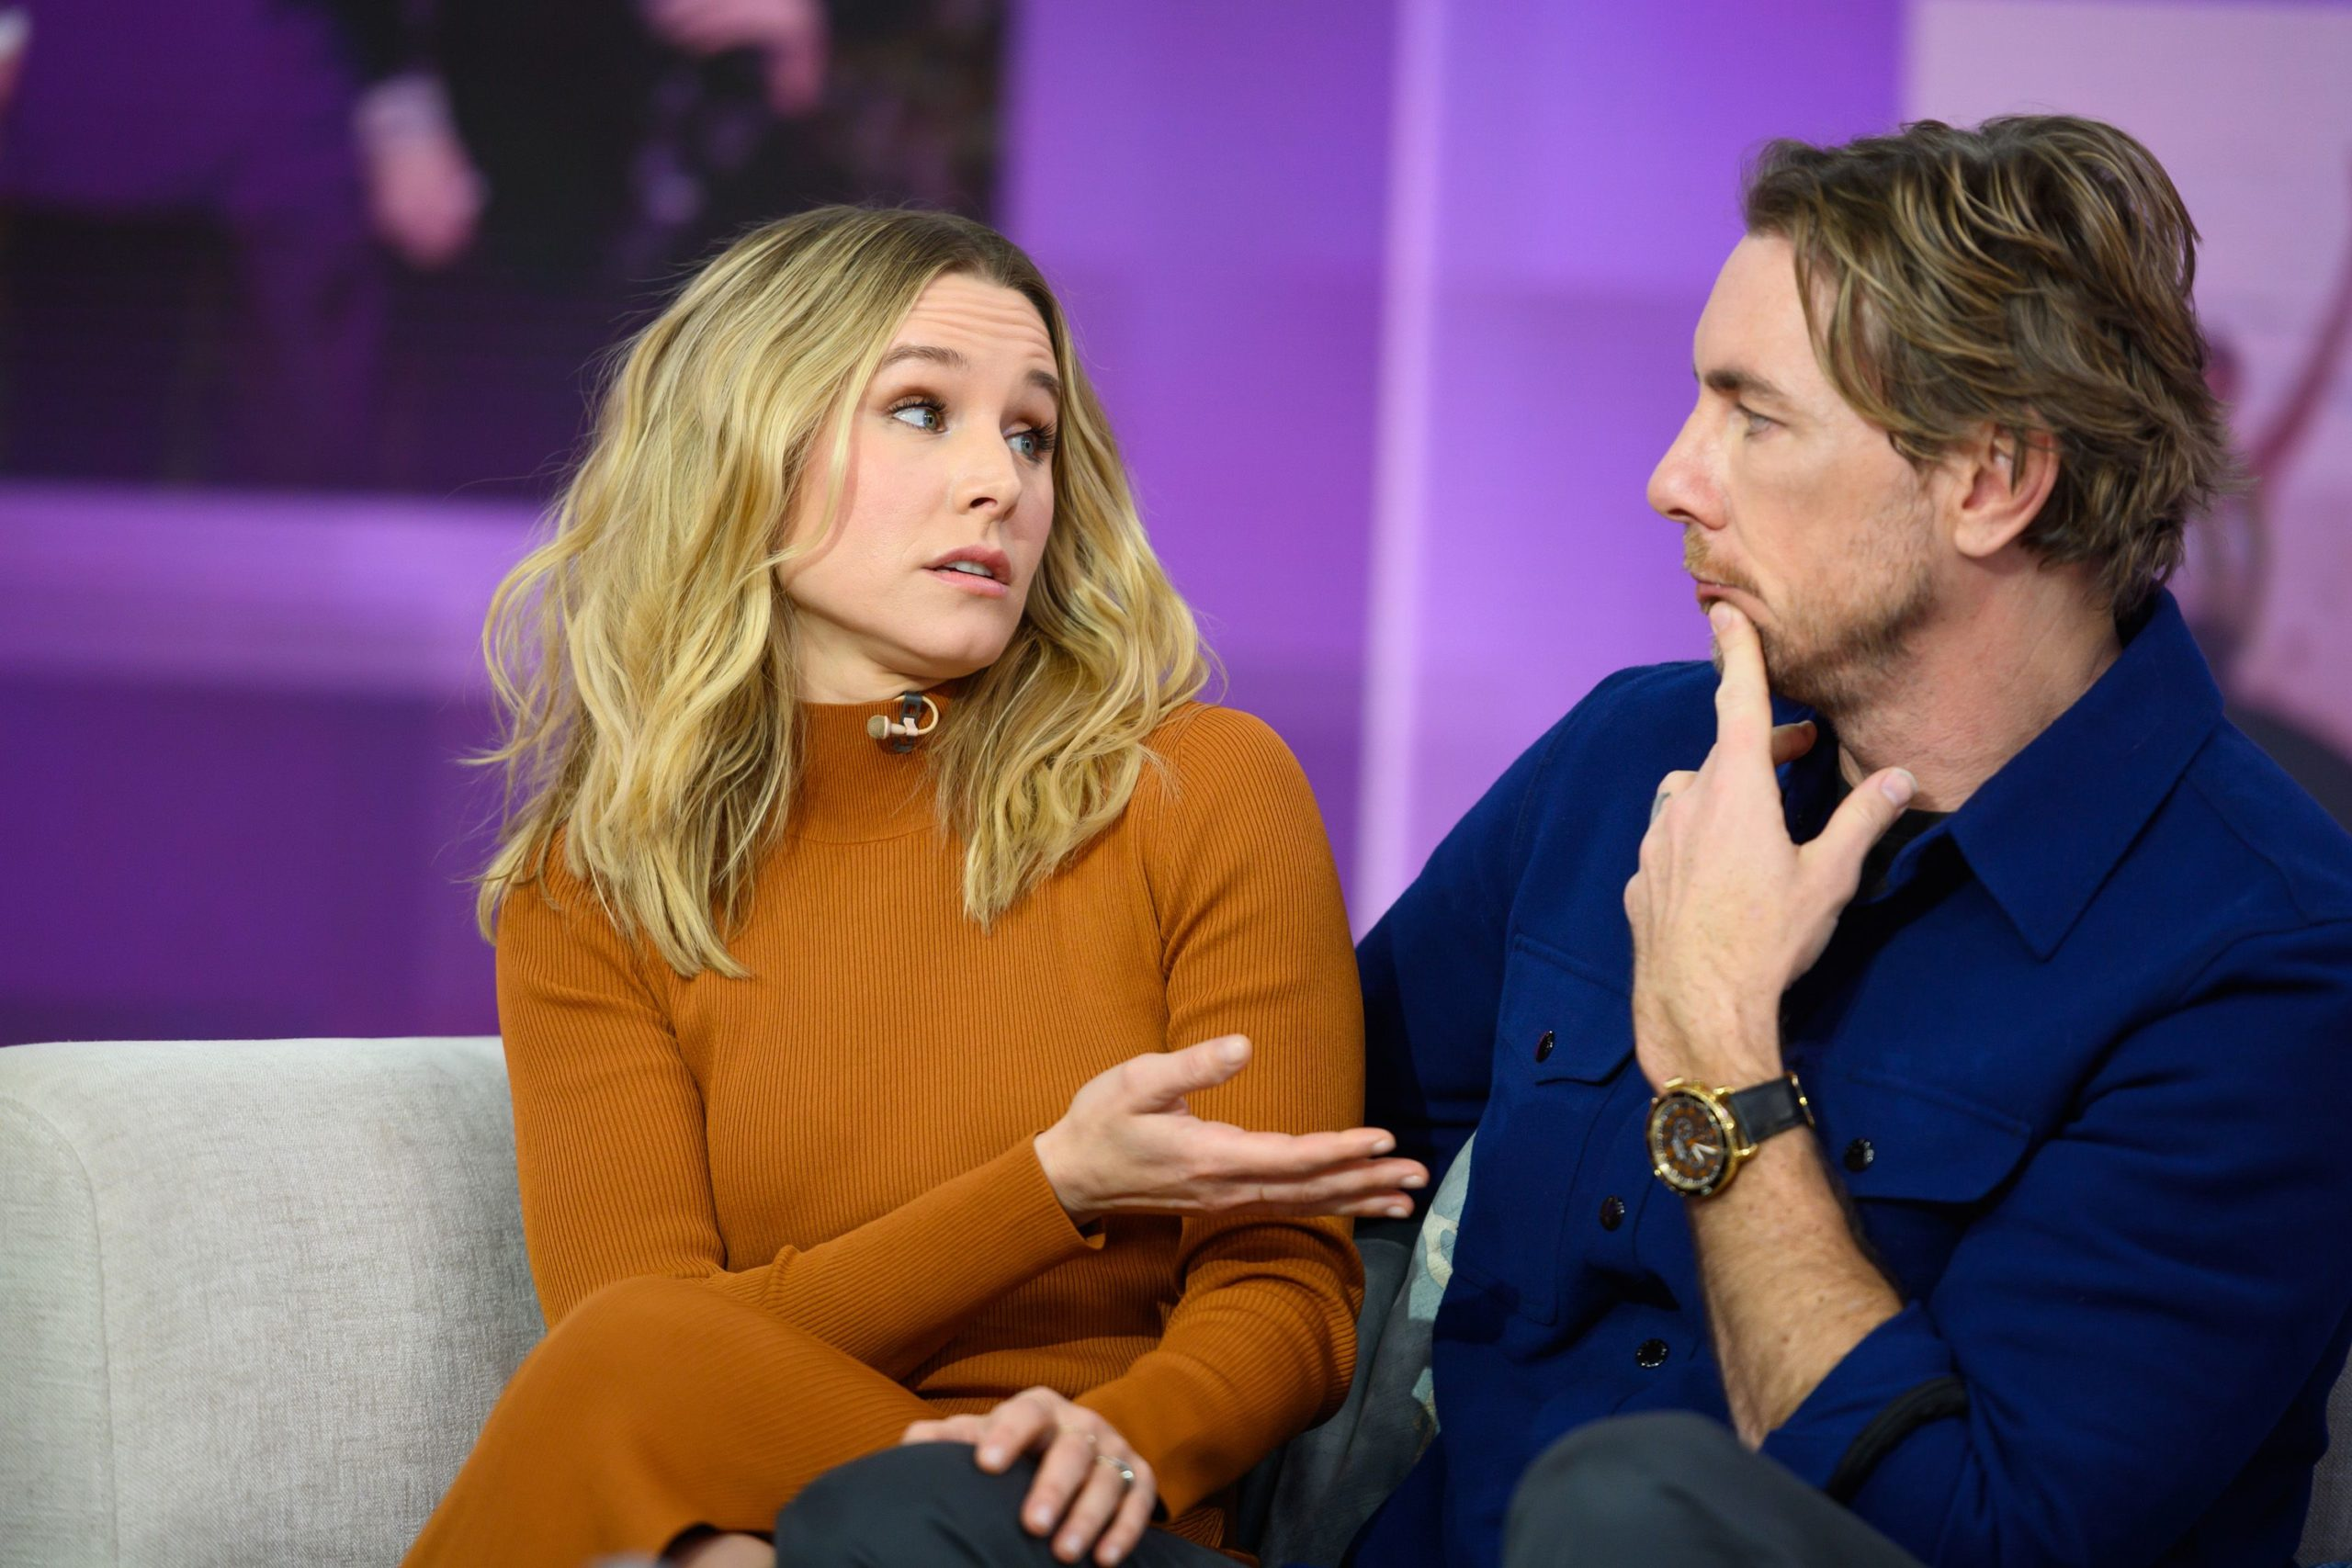 Kristen Bell and Dax Shepard are Fighting in the Quarantine